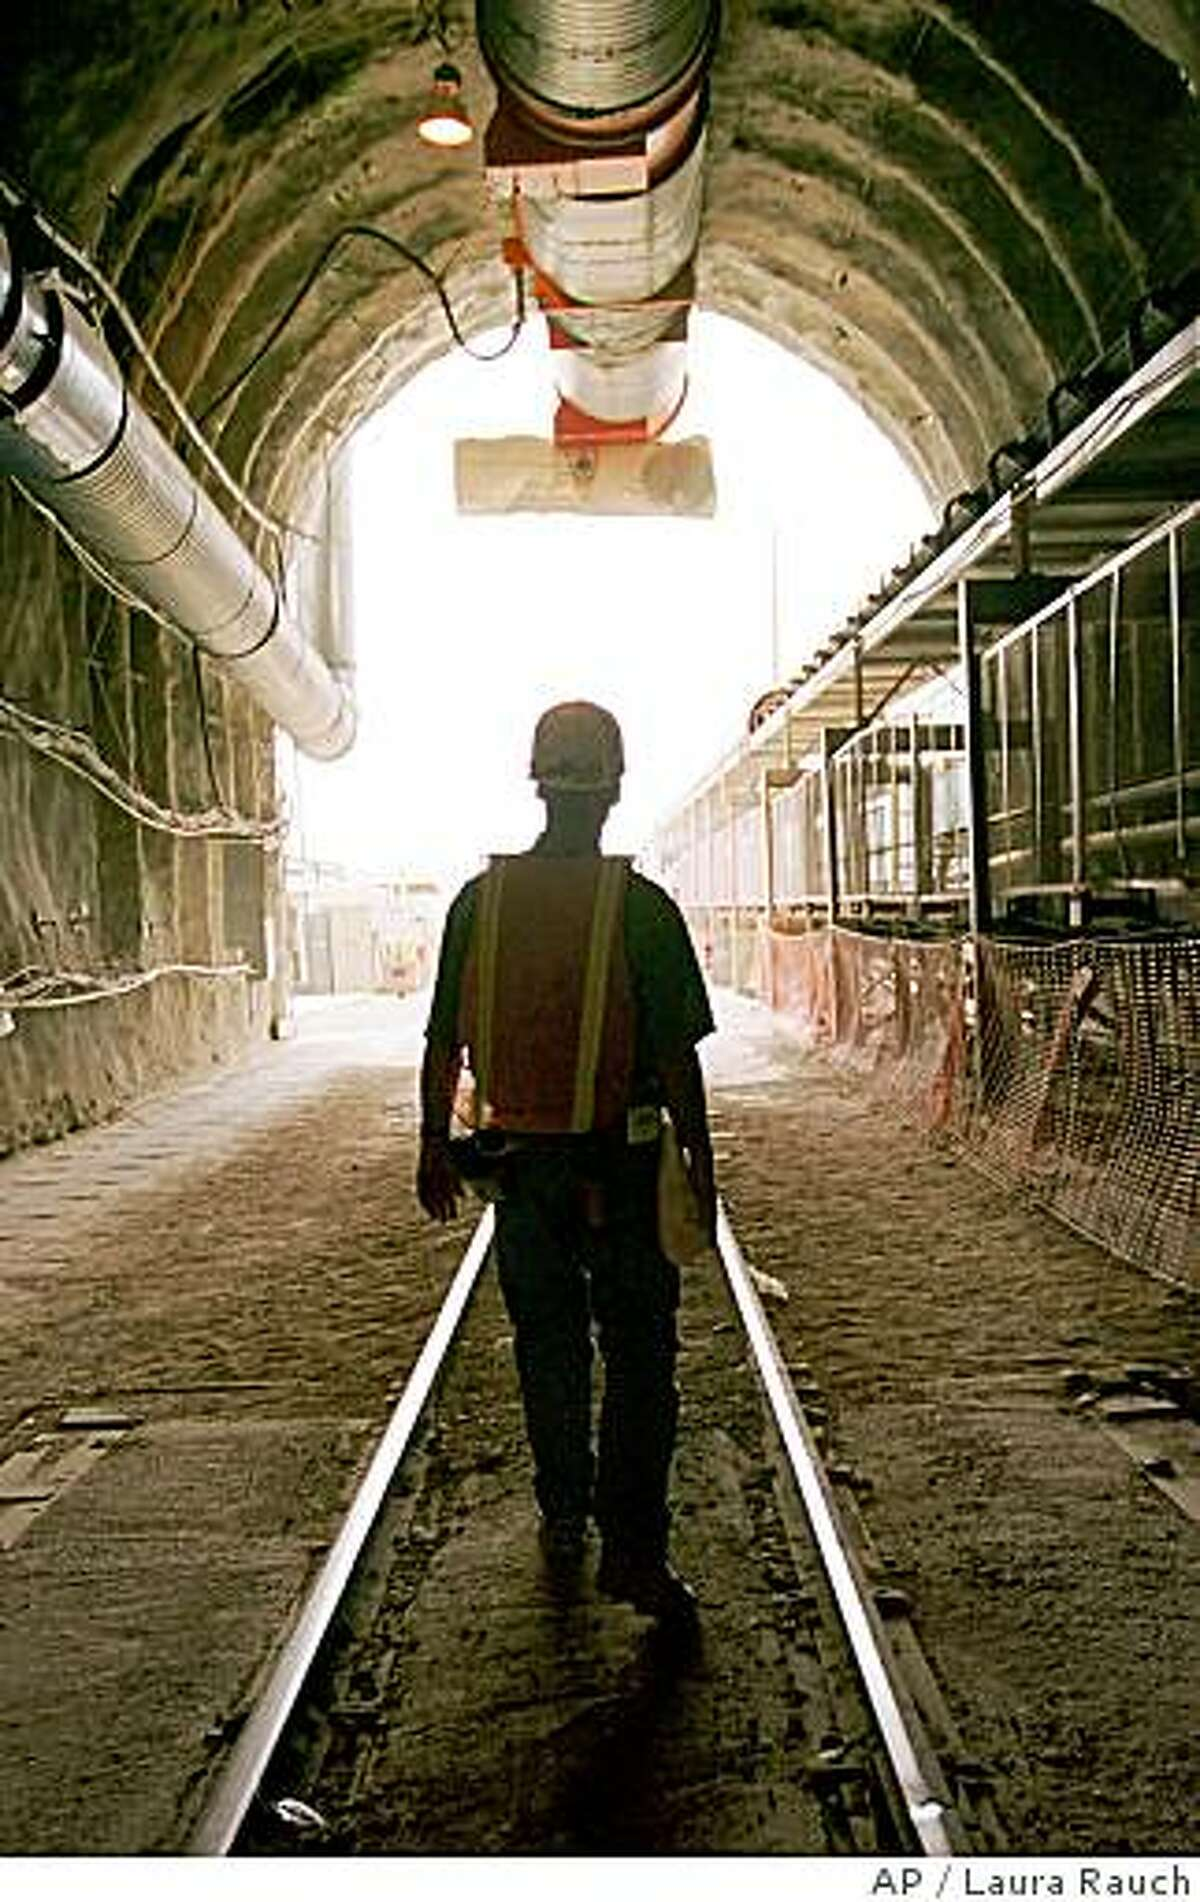 **FILE** In this May 9, 2000 file photo, a mining engineer walks out the front entrance tunnel at the Yucca Mountain Project at the Nevada Test Site. The Bush administration moved a step closer to building a nuclear waste dump at Yucca Mountain in Nevada on Tuesday, Juine 3, 2008, filing a formal application for a construction license. (AP Photo/Laura Rauch, File)